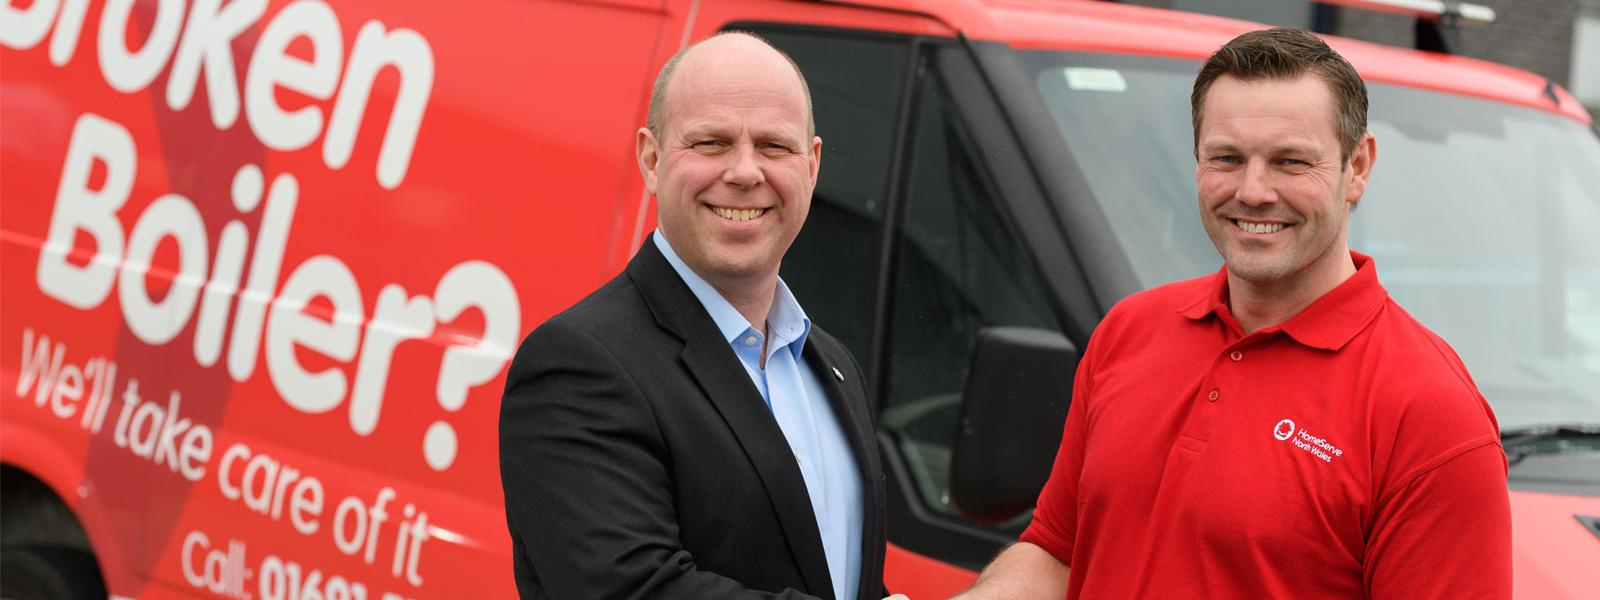 HomeServe Connect clocks up 20th franchise partnership as UK expansion continues